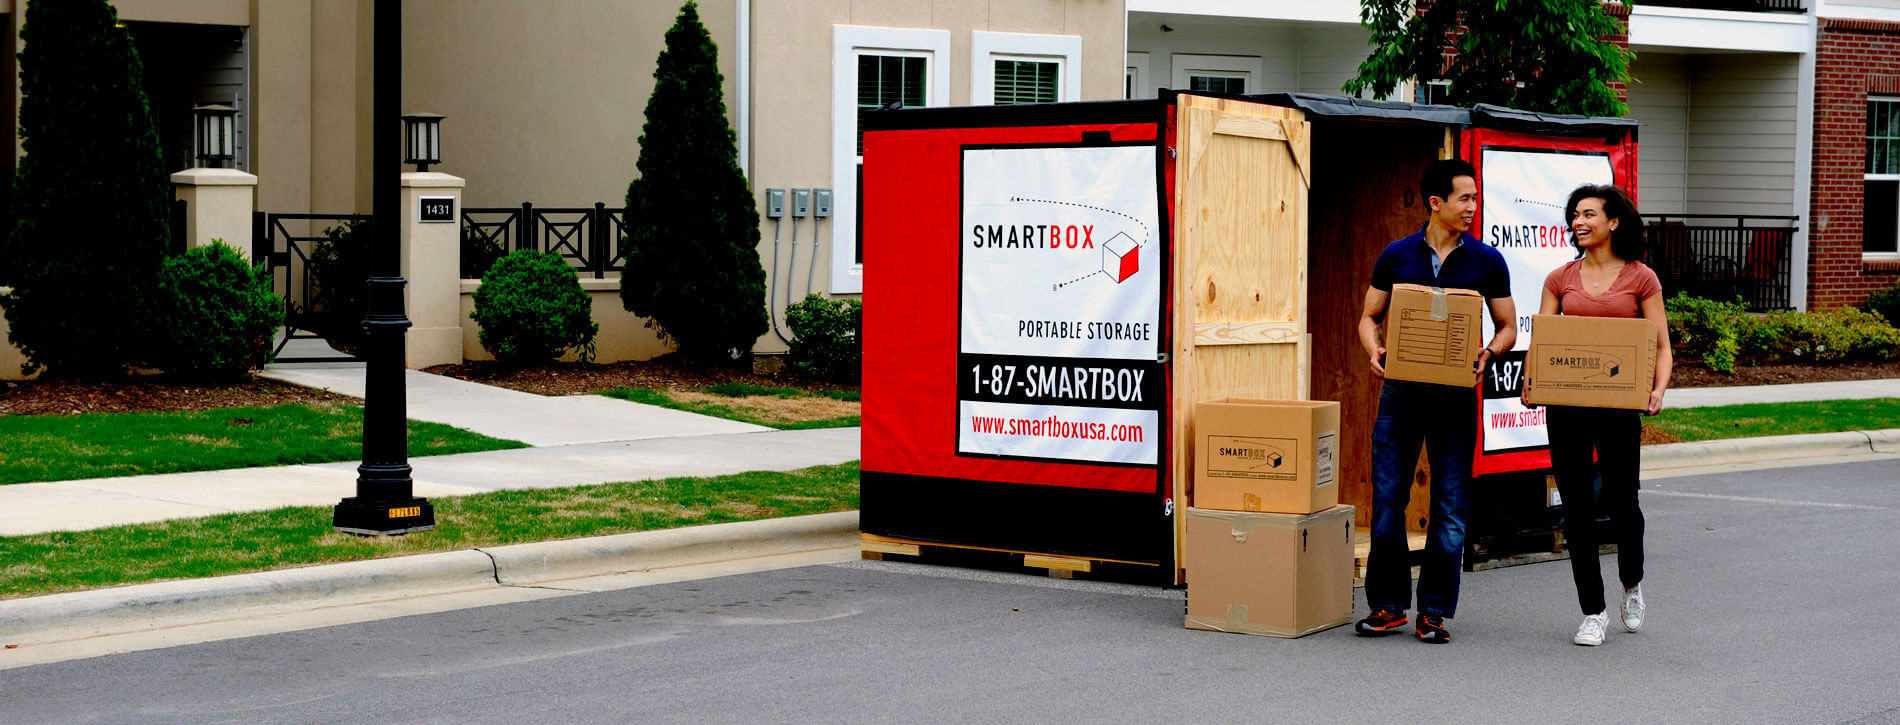 Smartbox portable storage | Advantage Moving and Storage | Chicago, IL